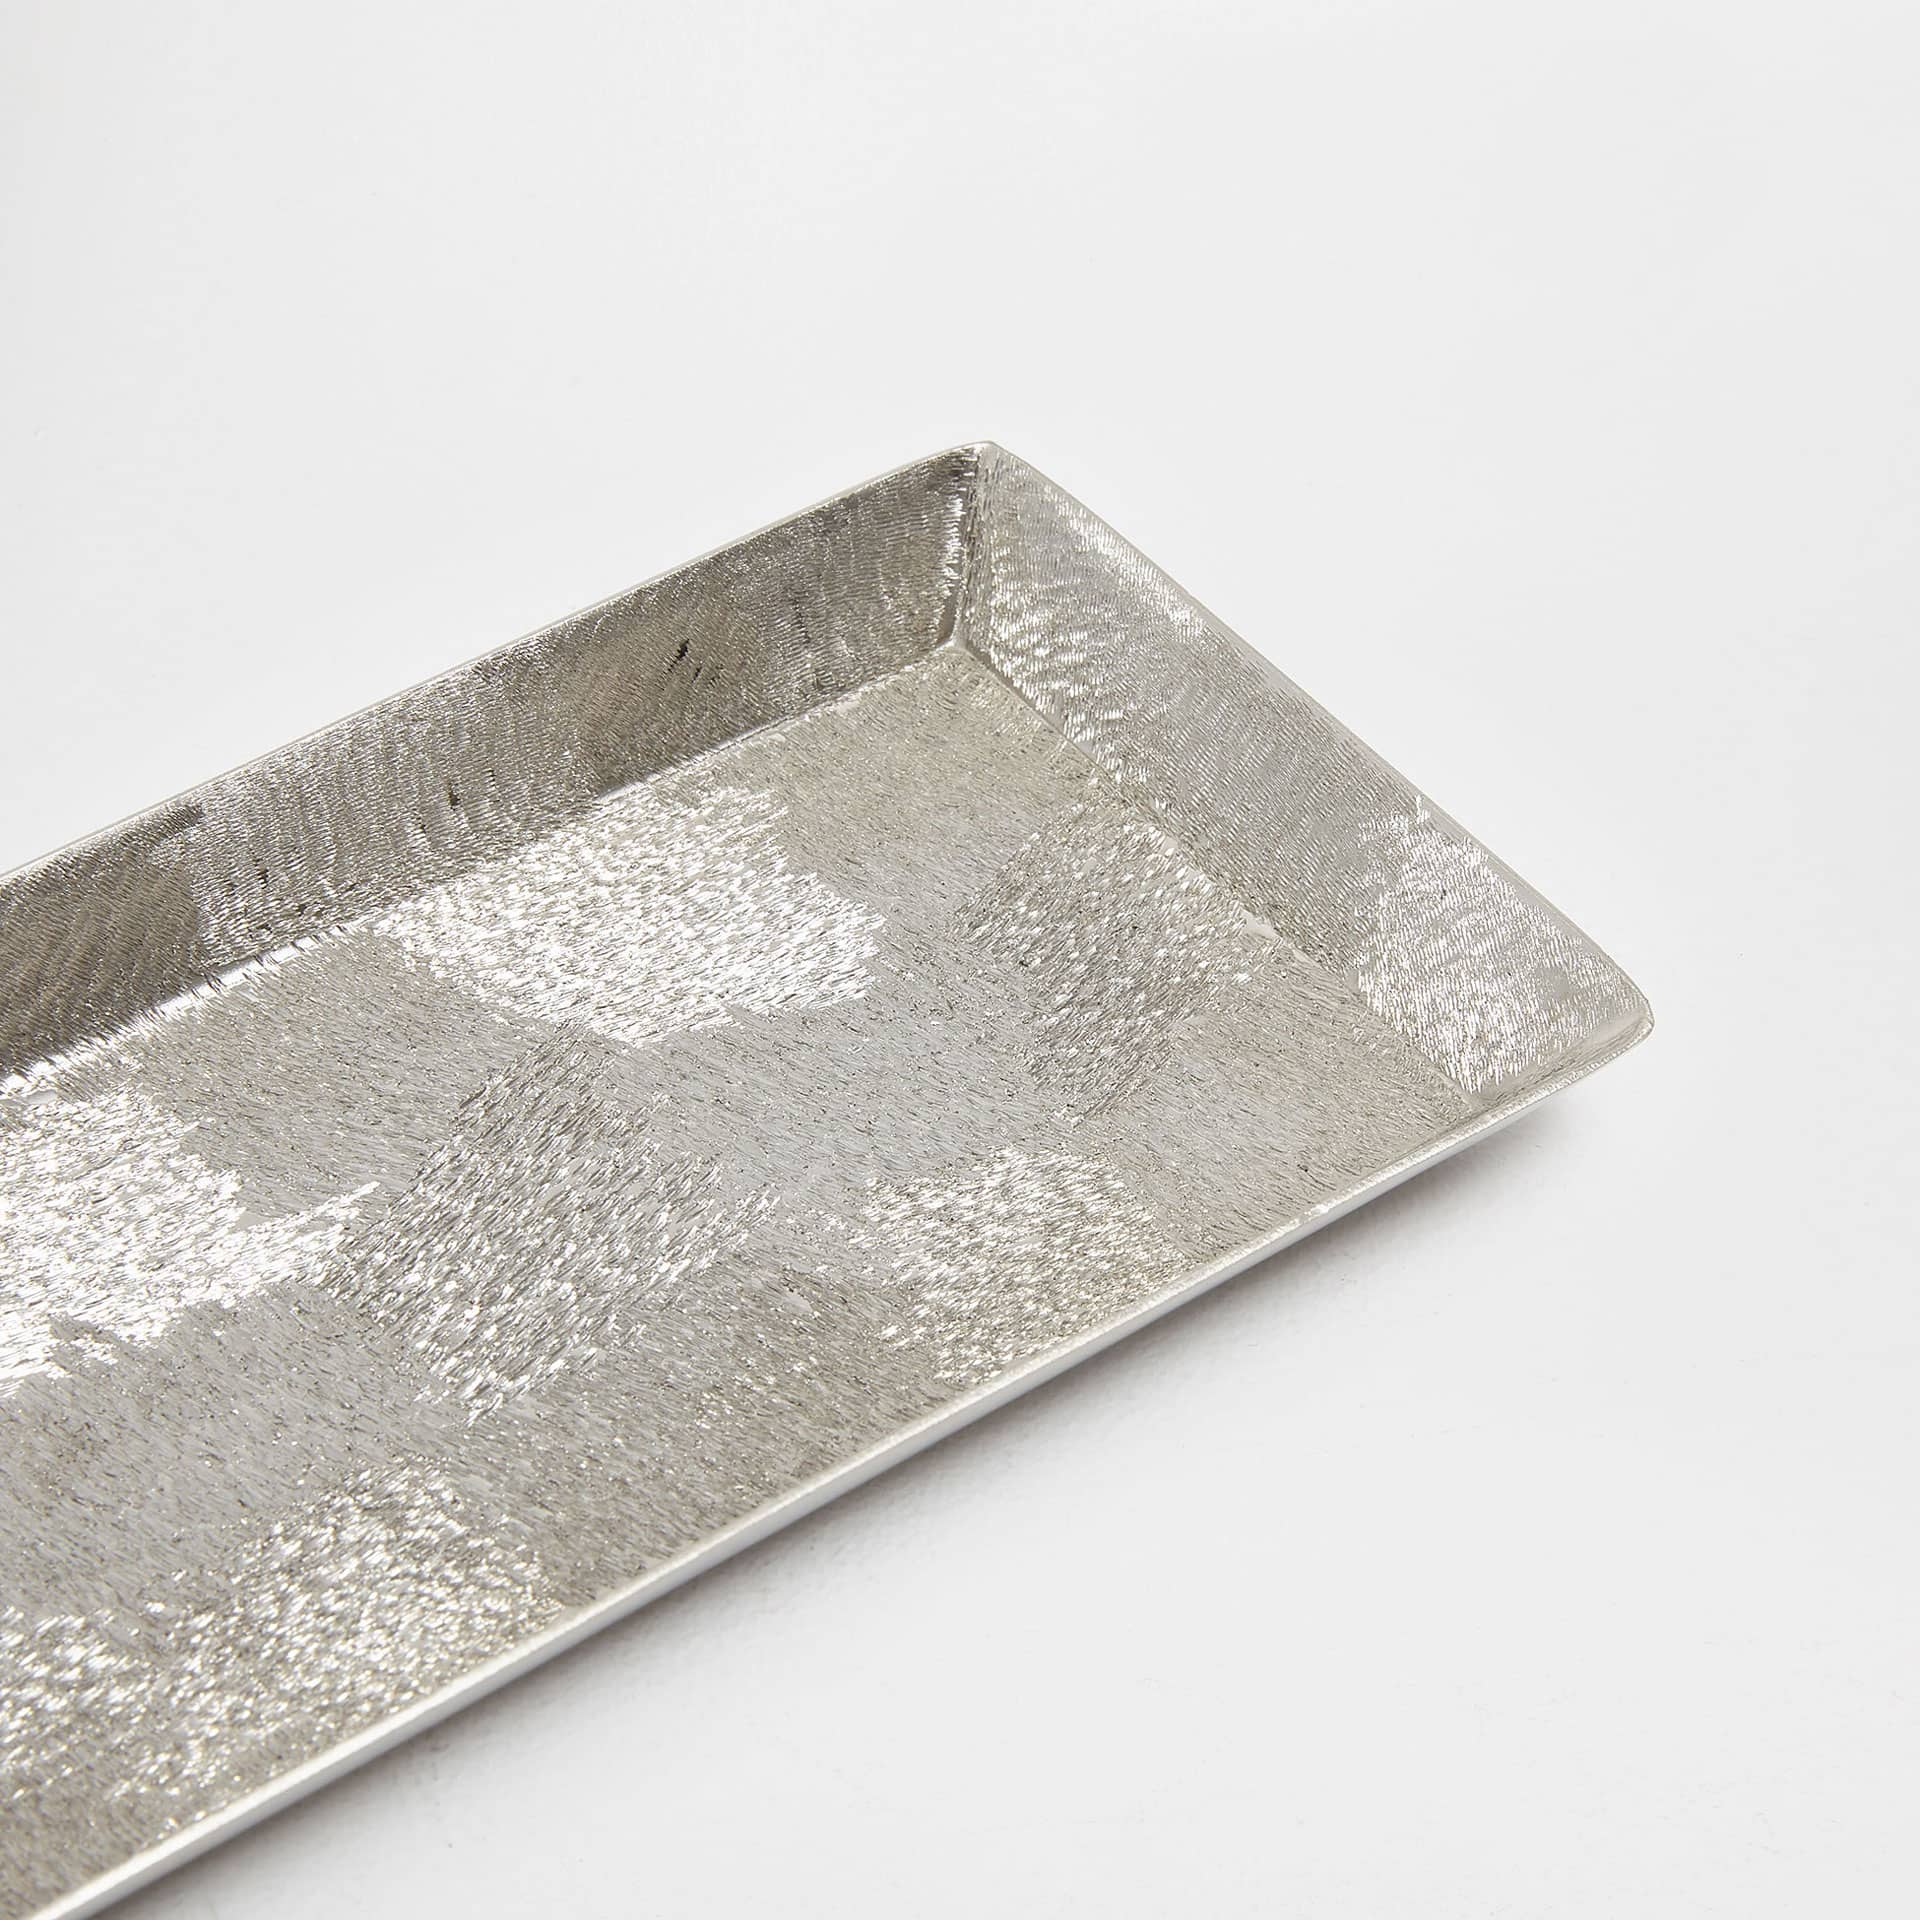 image 3 of the product silver decorative tray - Decorative Tray